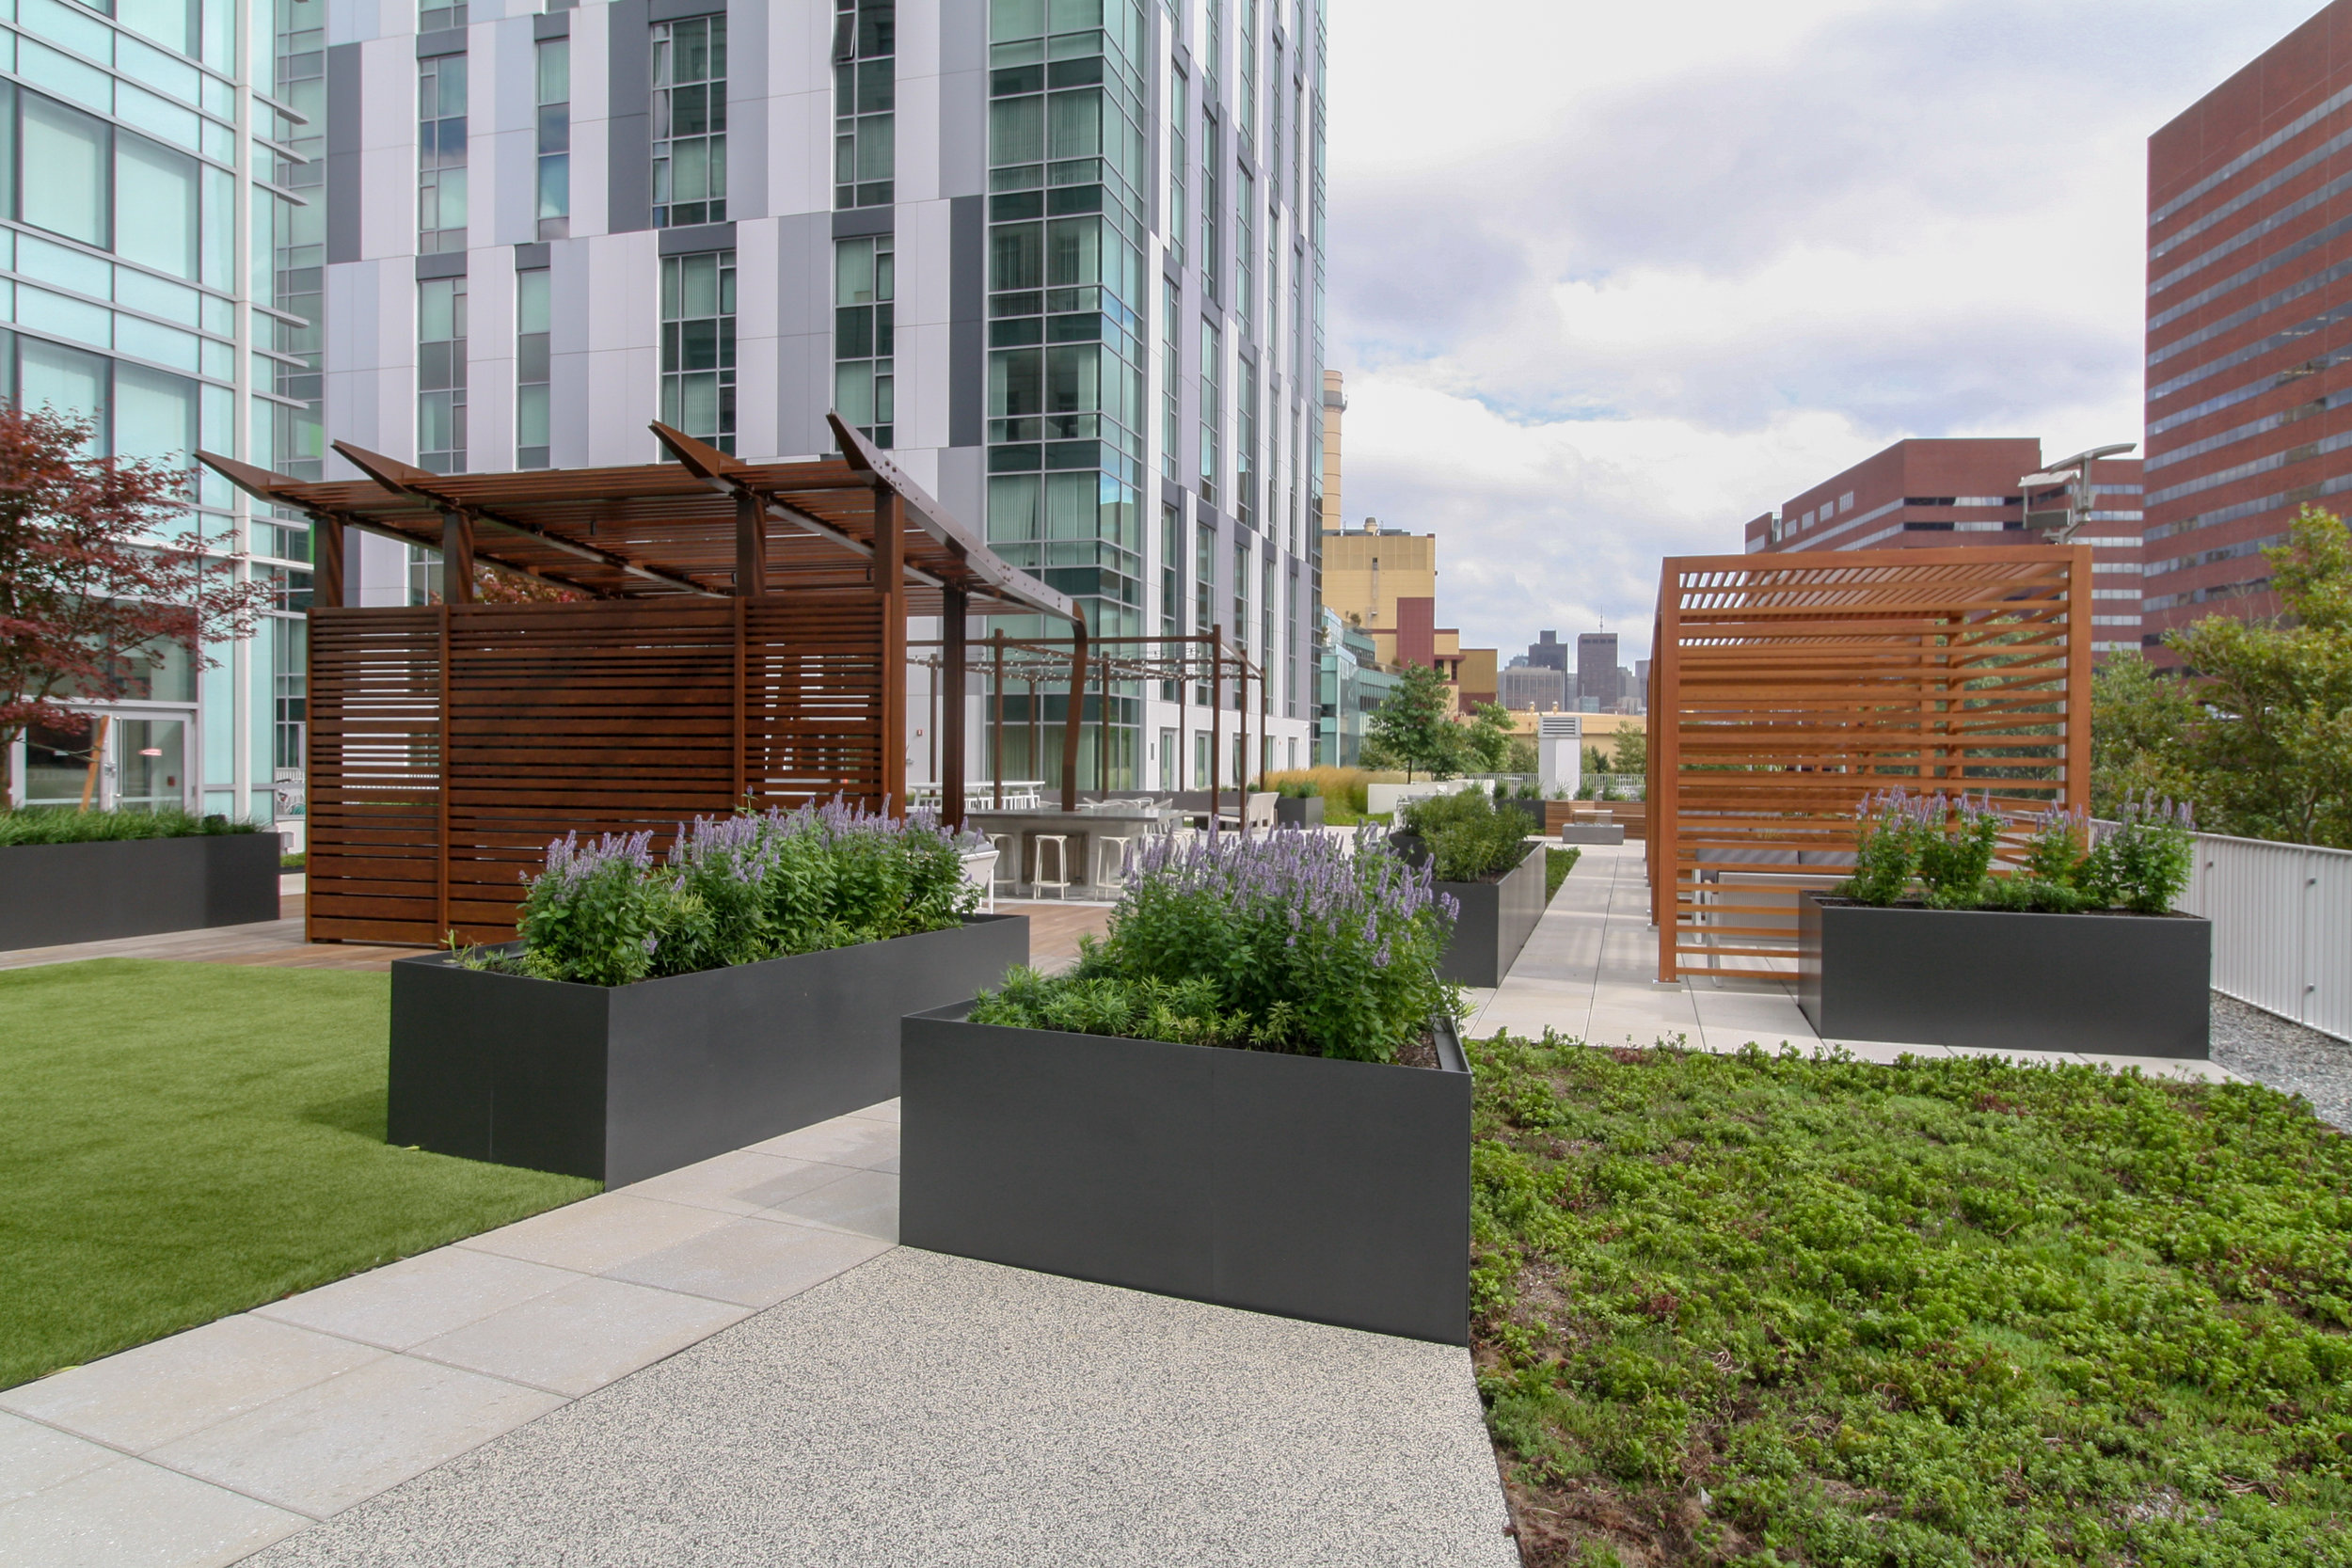 recover-green-roofs-plaza-watermark-9.jpg